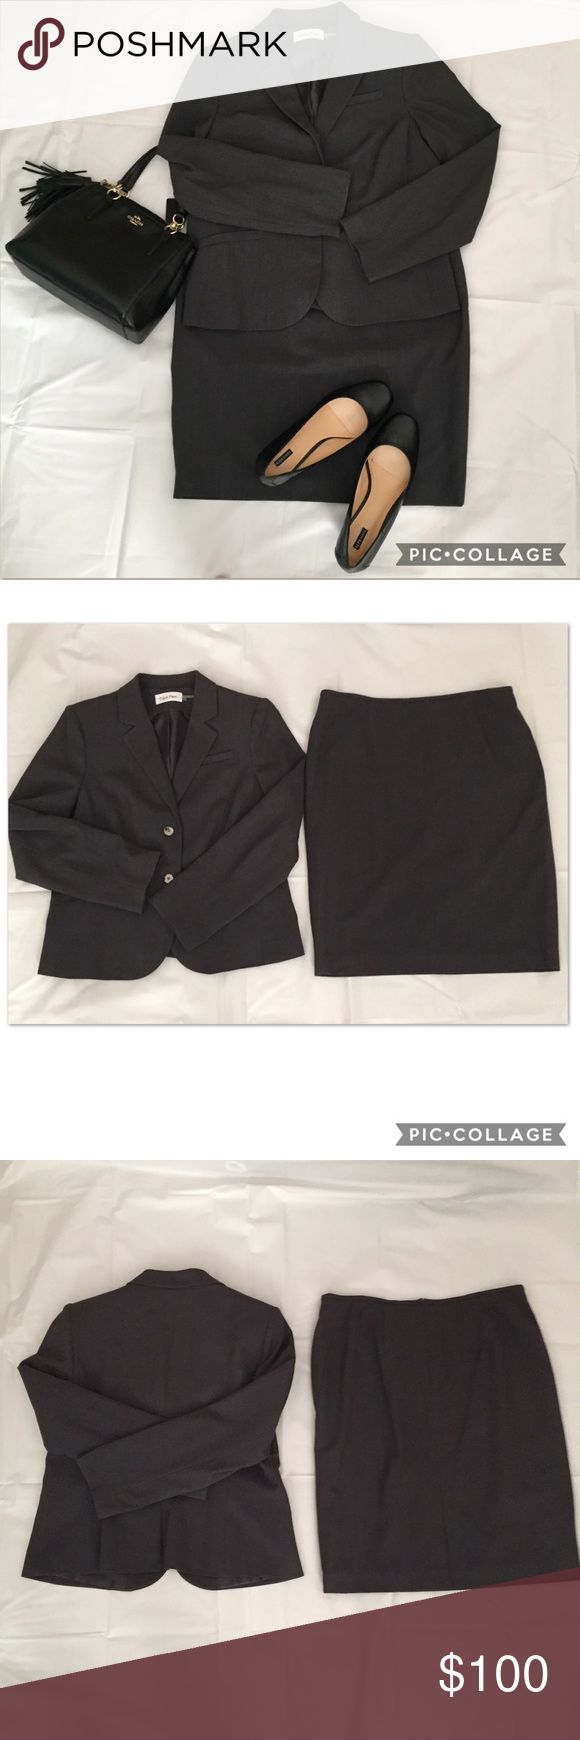 Calvin Klein Charcoal Grey Suit - NWOT Size 14 Calvin Klein Charcoal Grey Suit - NWOT Size 14 Calvin Klein Other